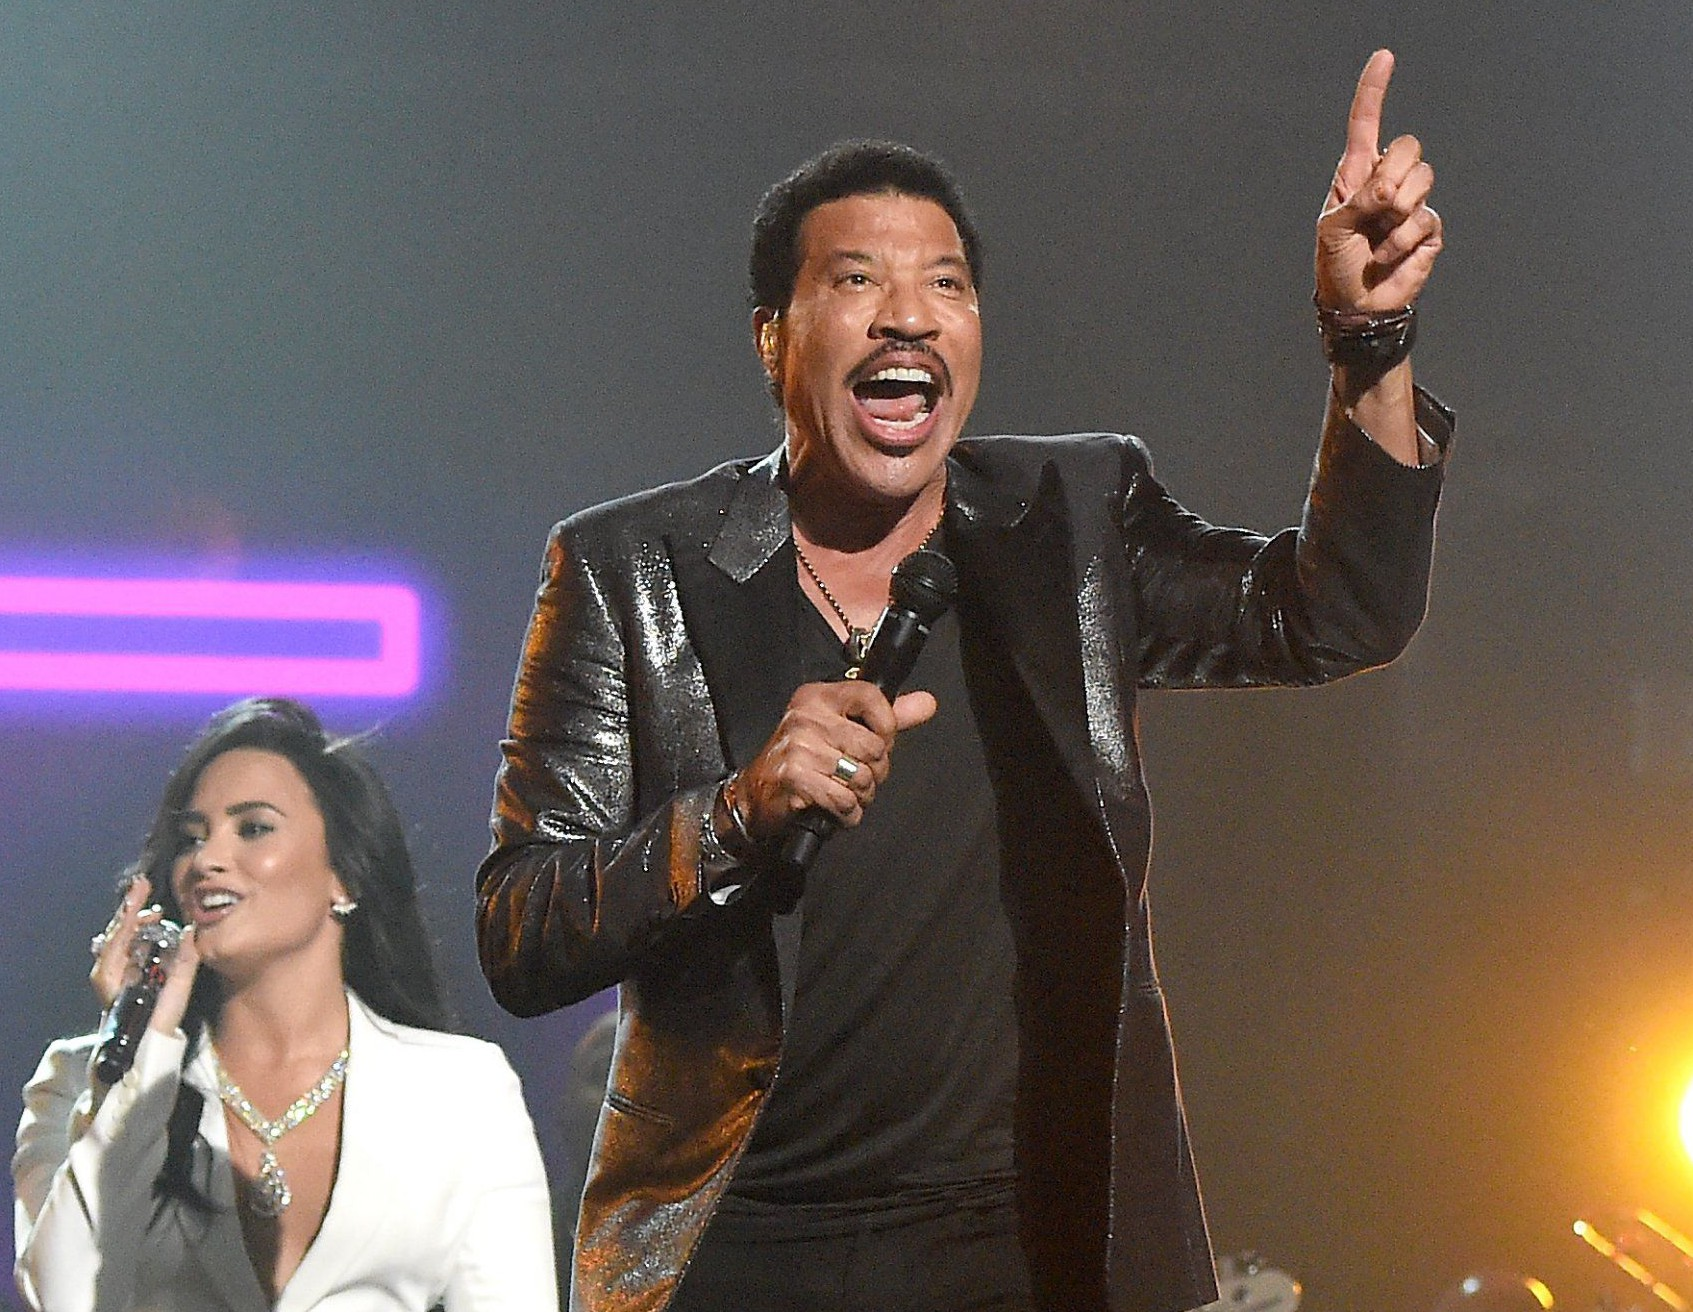 The Grammys 2016: Lionel Richie was absolutely loving Demi Lovato's tribute